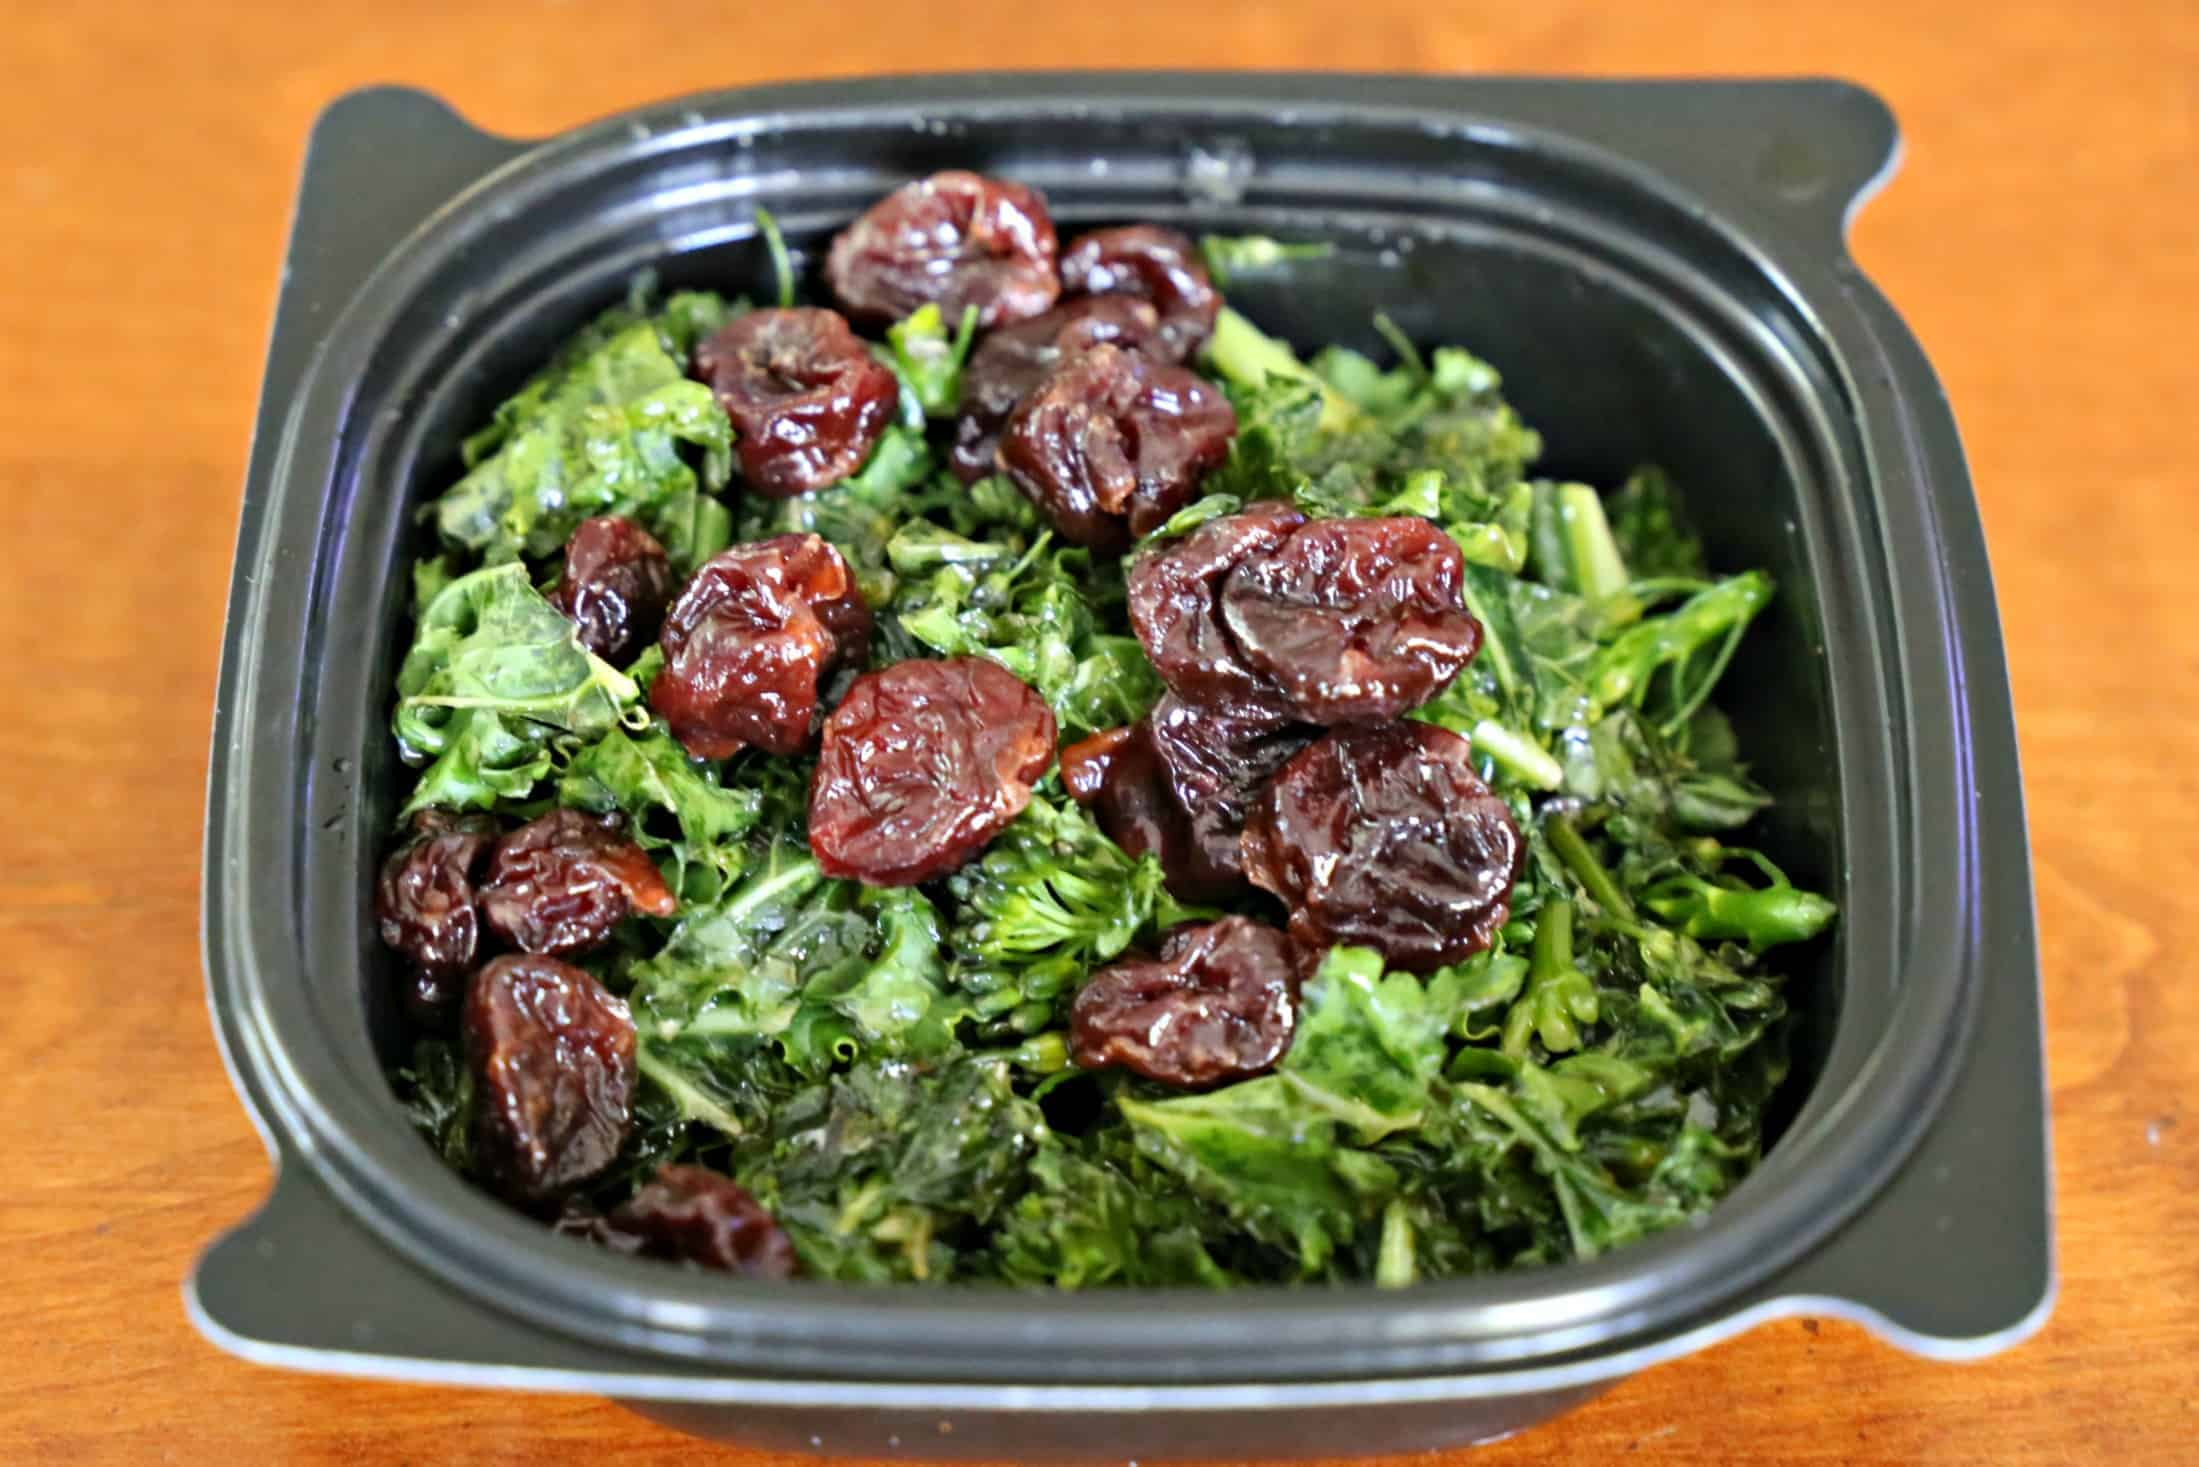 Superfood side made with kale and raisins in a small bowl.